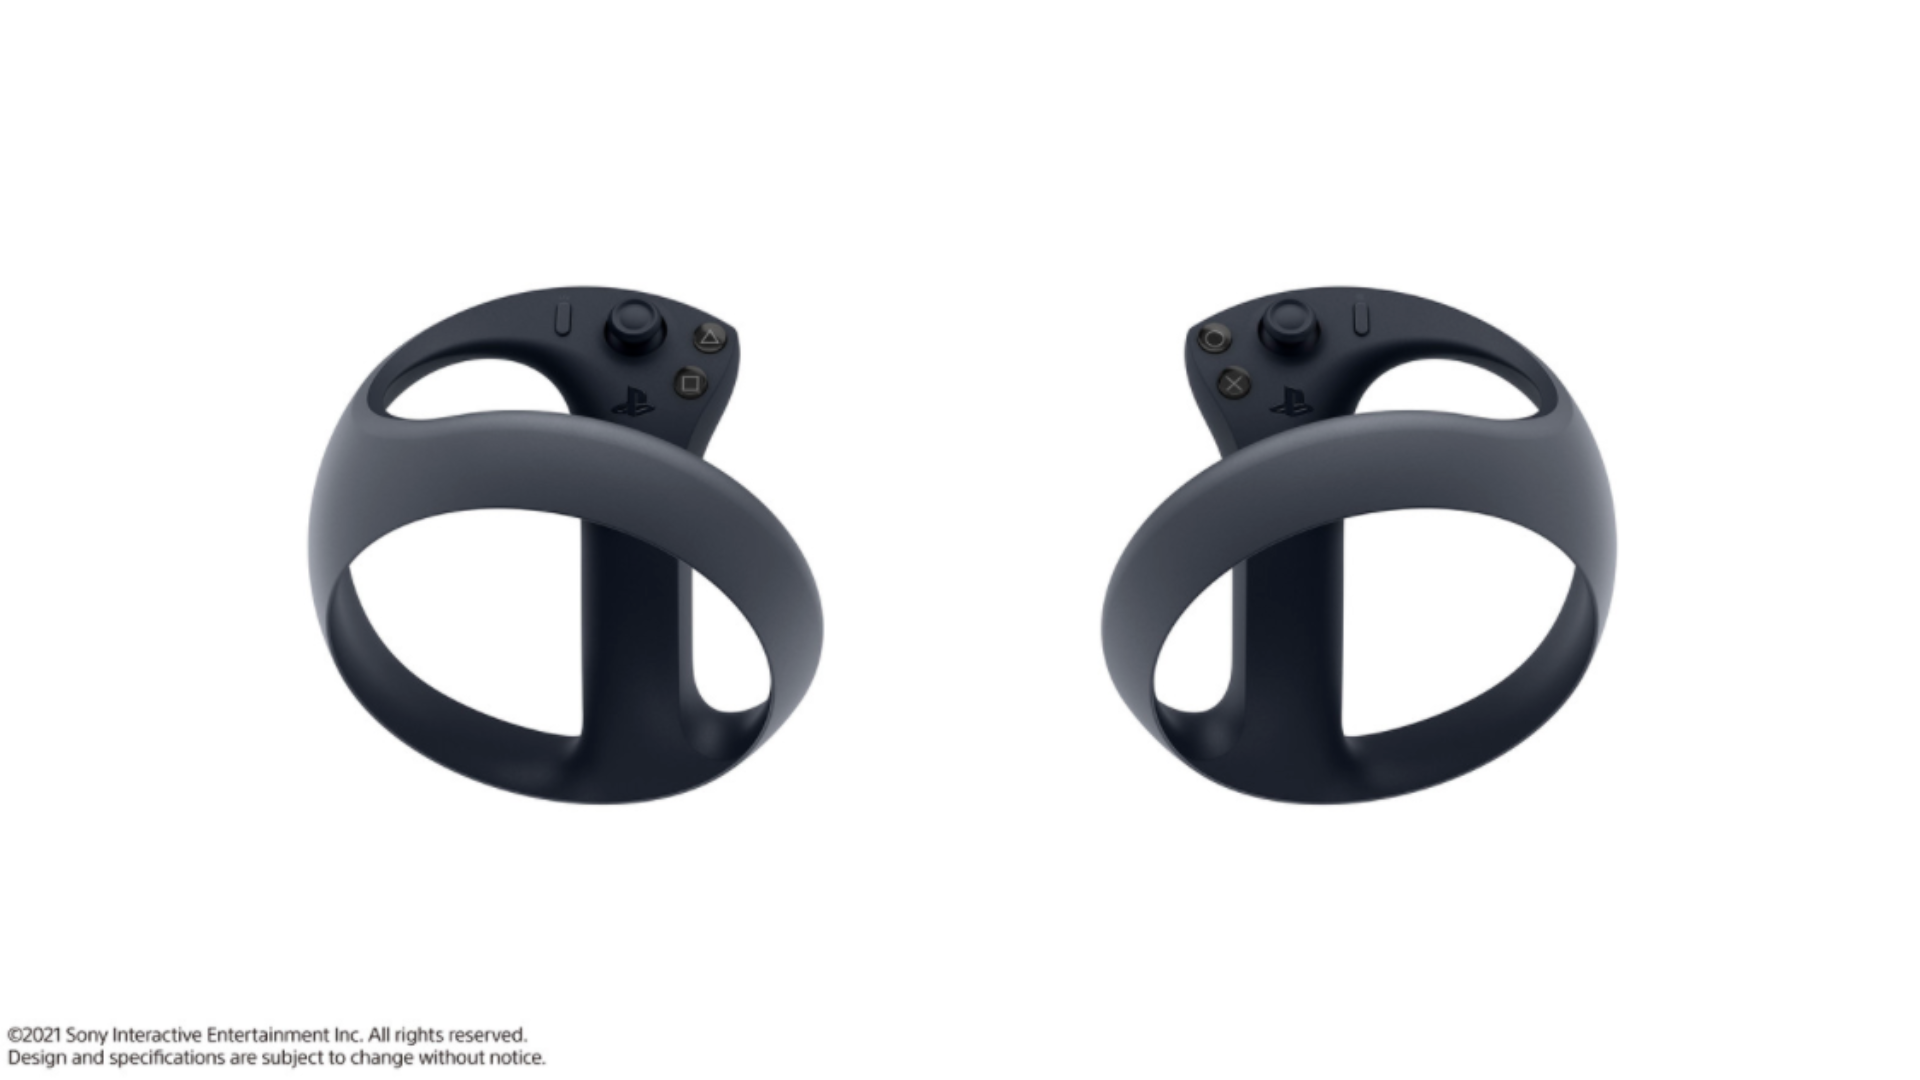 Video: The PlayStation VR 2 controllers revealed